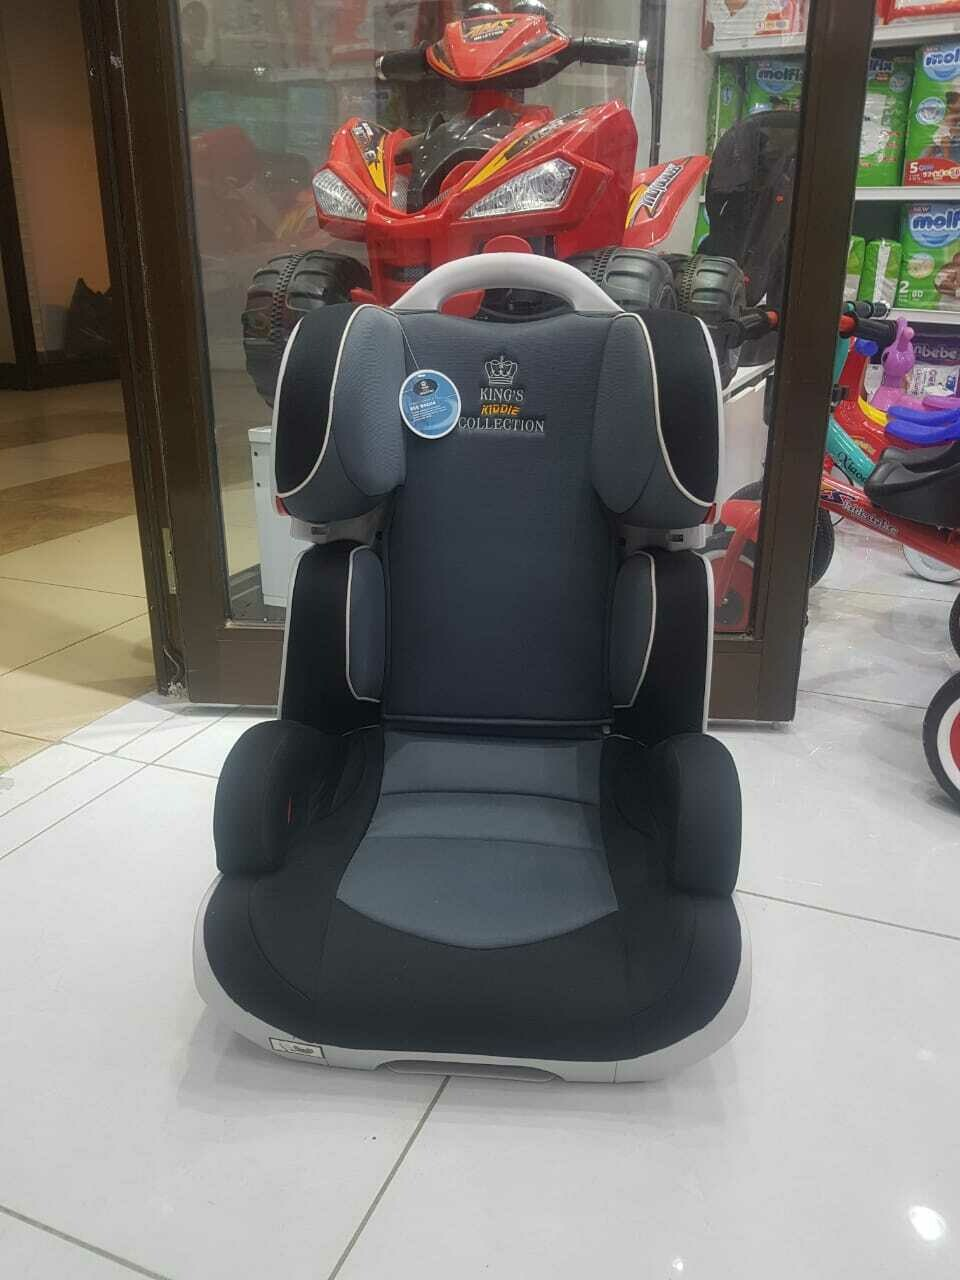 Kings Kiddie Collection Baby Car Seat